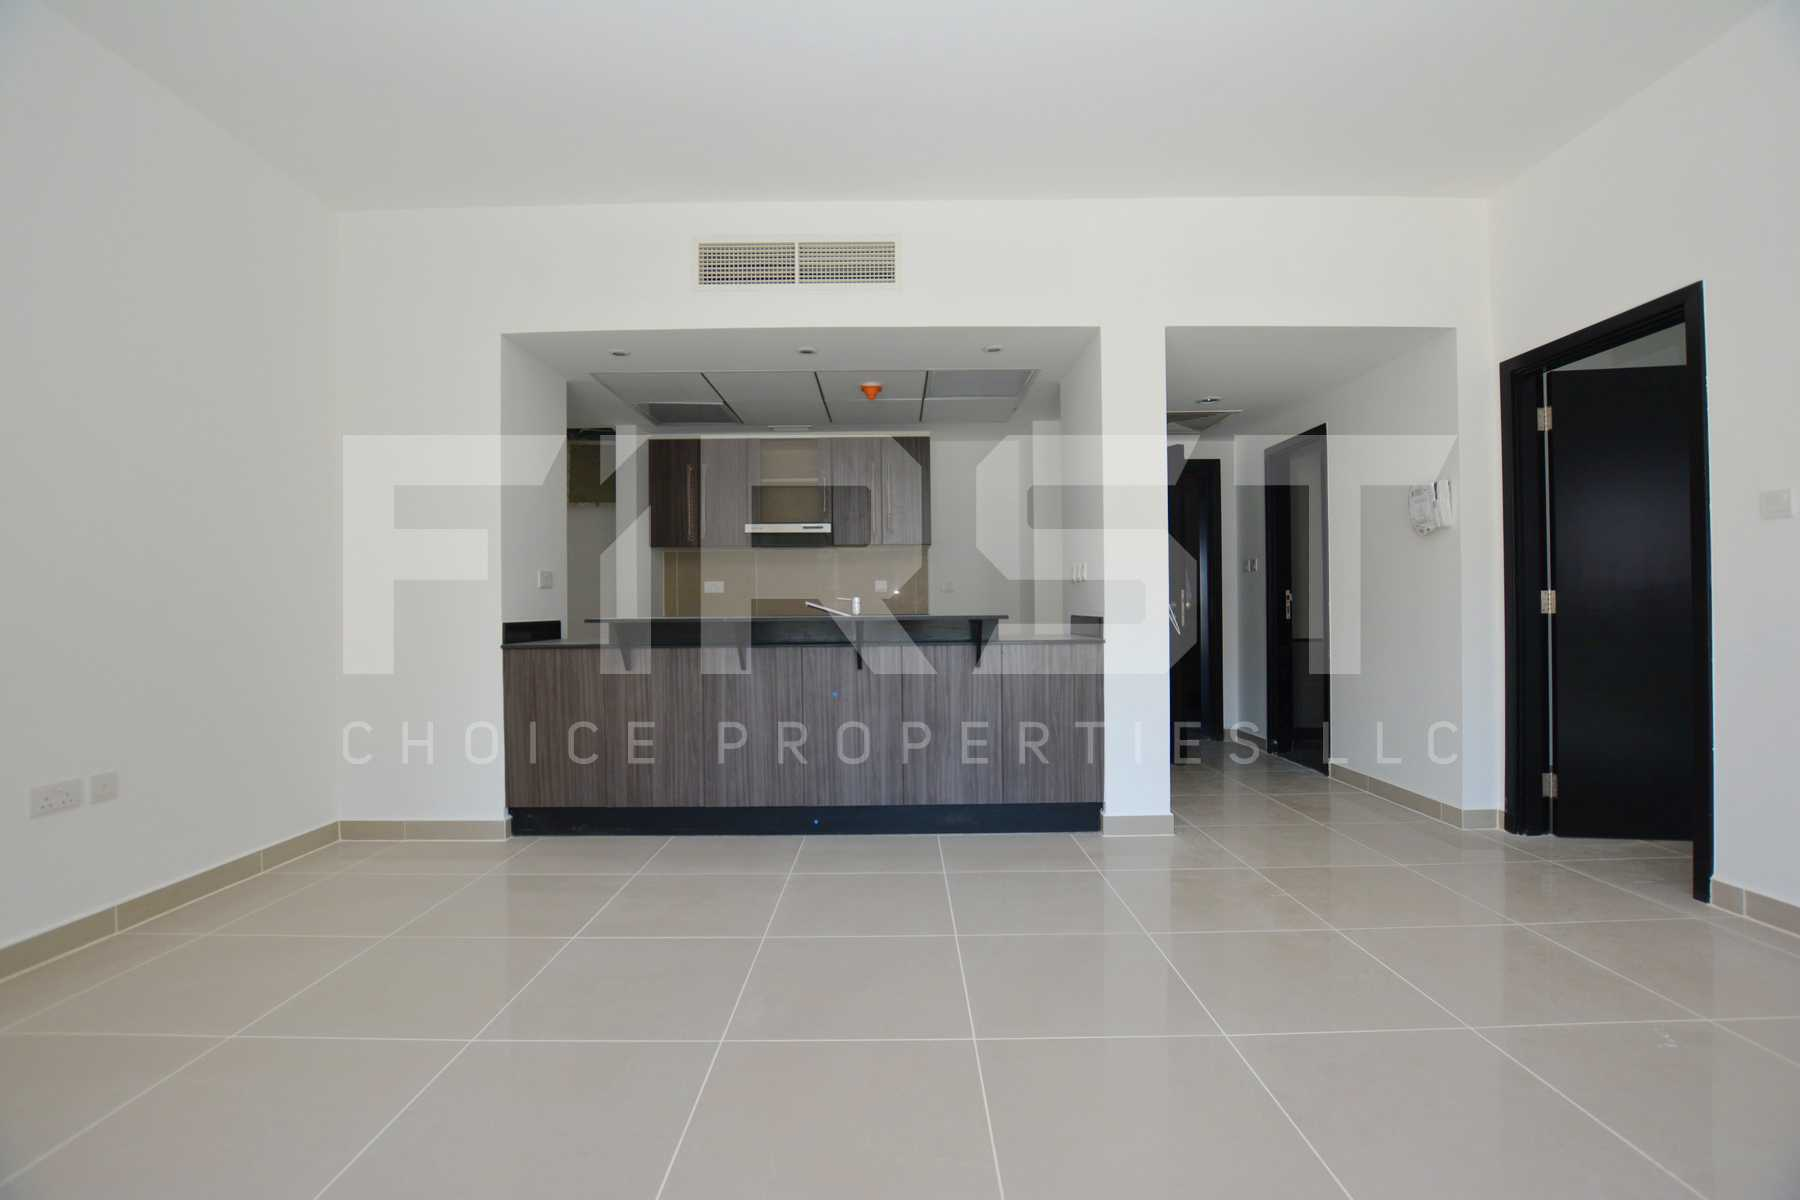 Internal Photo of 1 Bedroom Apartment Type A in Al Reef Downtown Al Reef Abu Dhabi UAE 74 sq.m 796 sq.ft (10).jpg